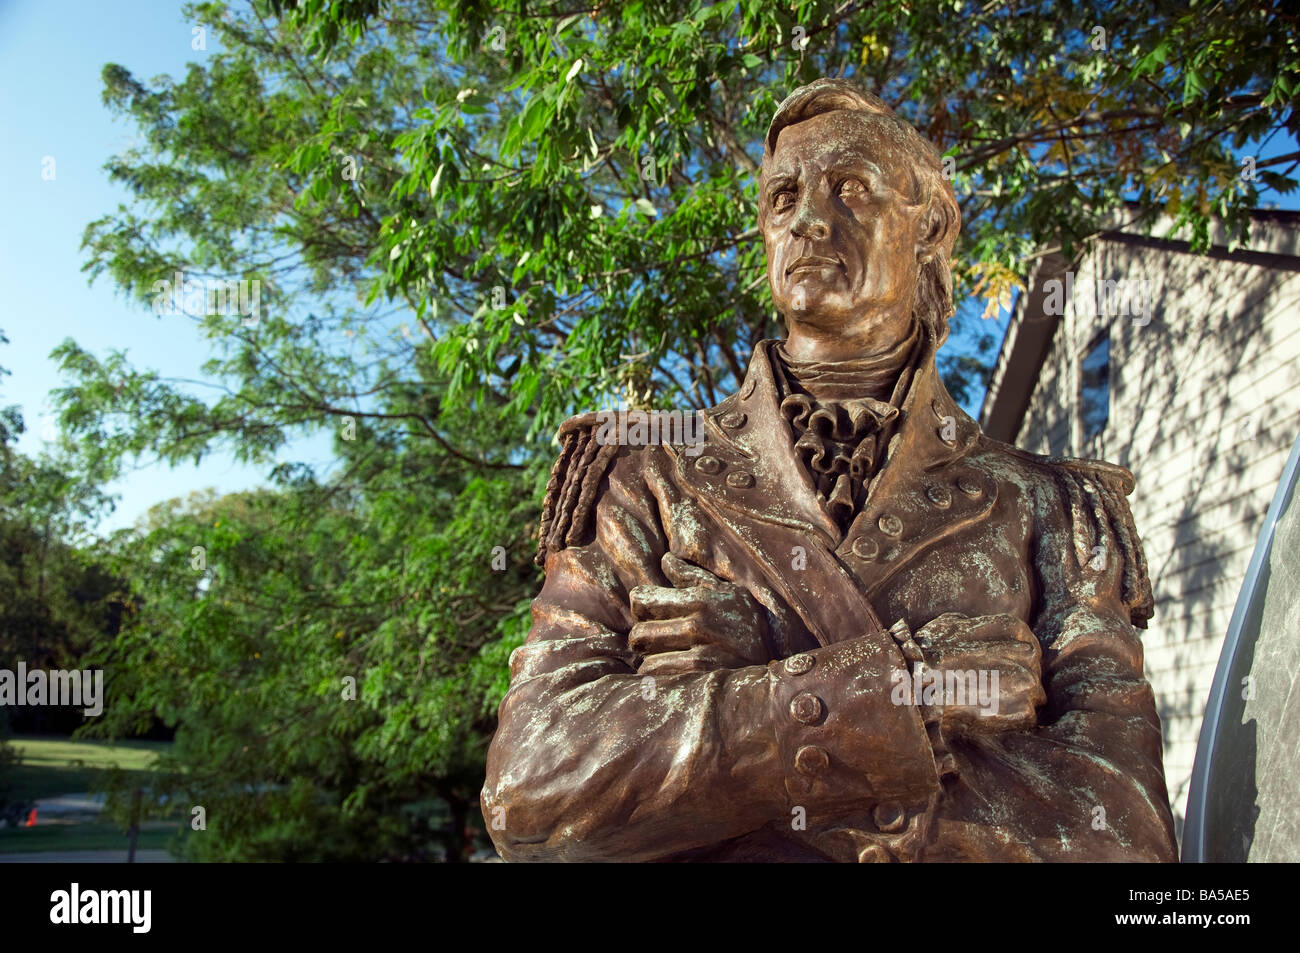 Statue von George Rogers Clark in Locust Grove in Louisville, Kentucky Stockbild